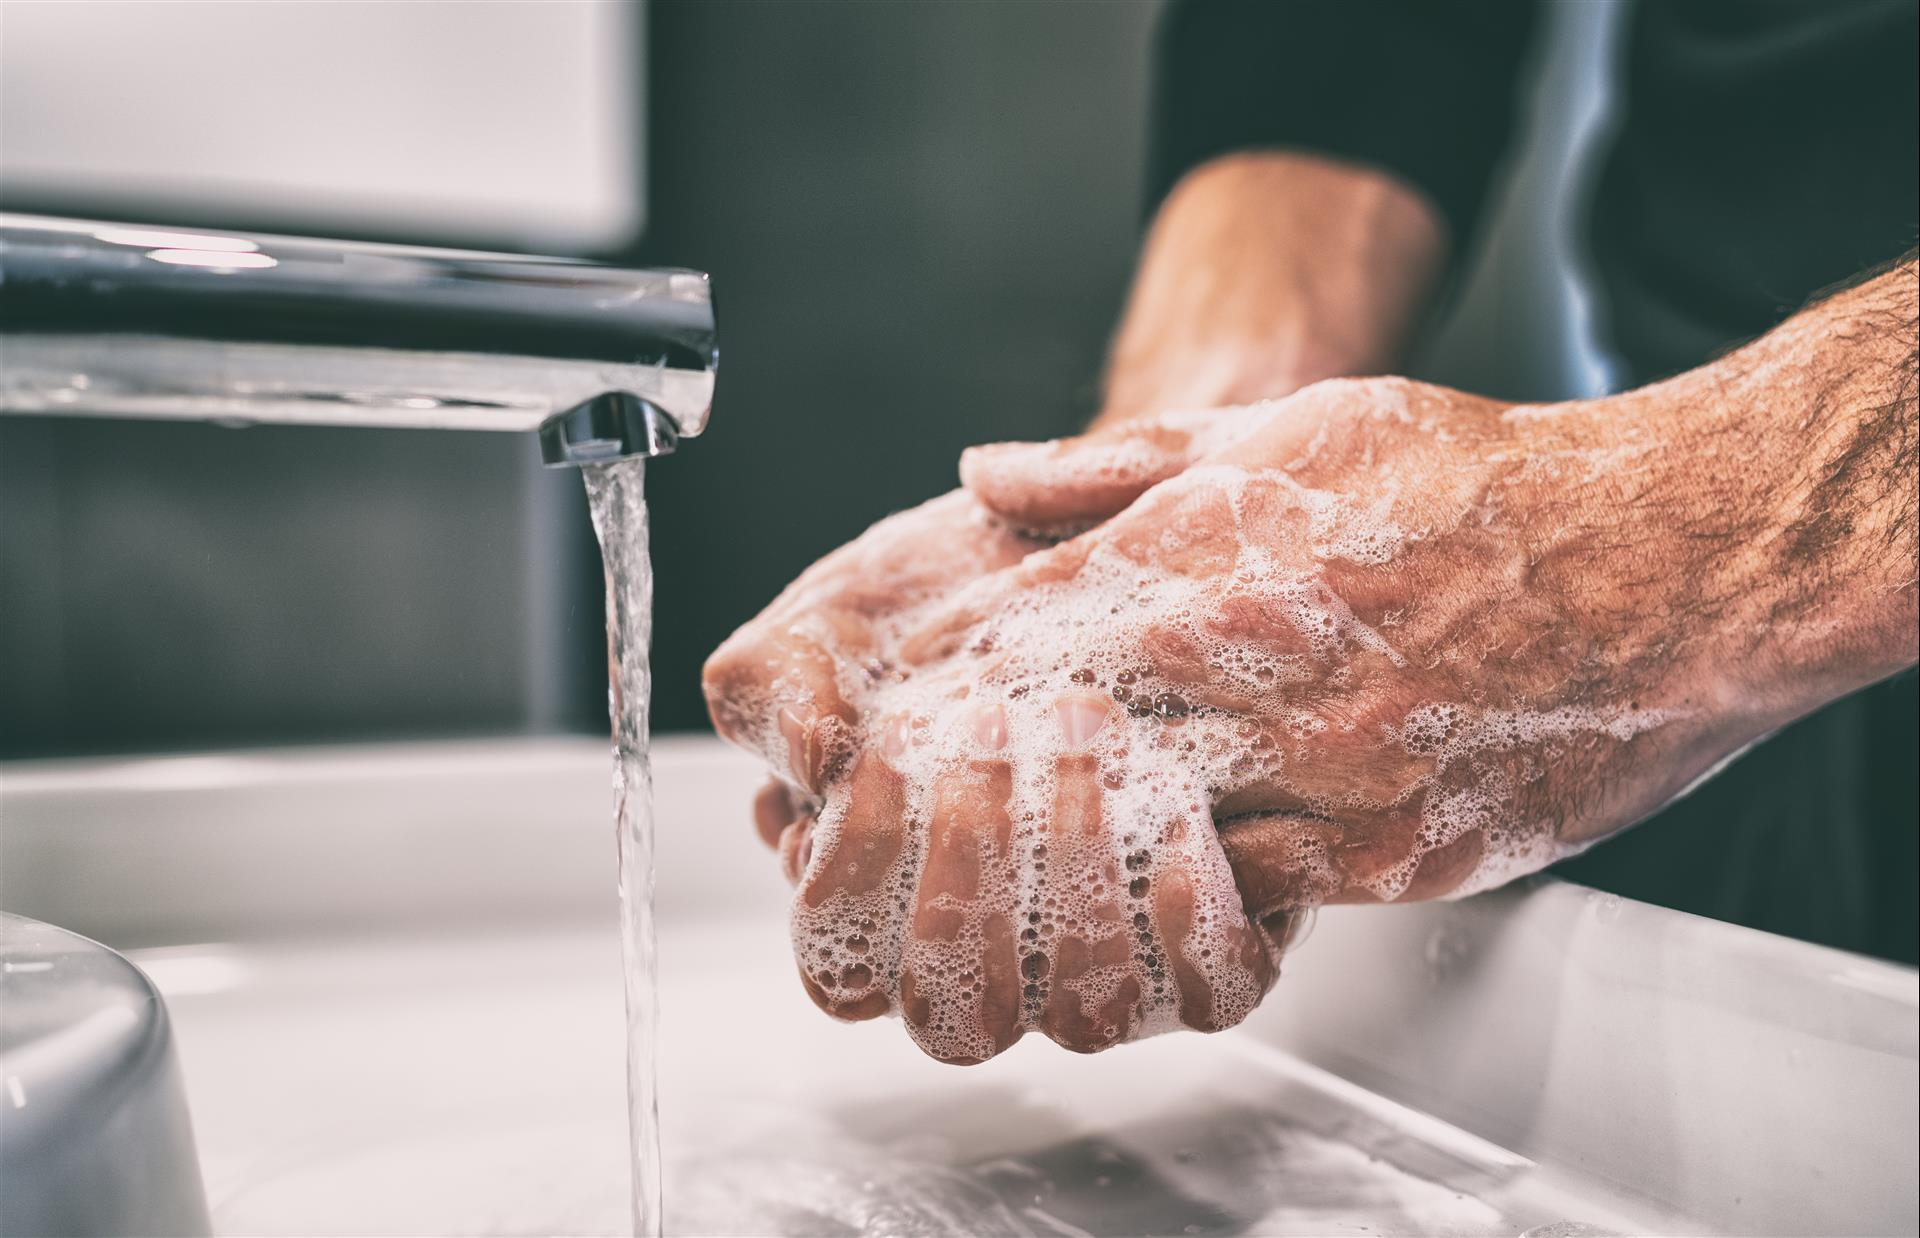 5 TIPS FOR GOOD HAND HYGIENE IN AN ASSISTED LIVING COMMUNITY